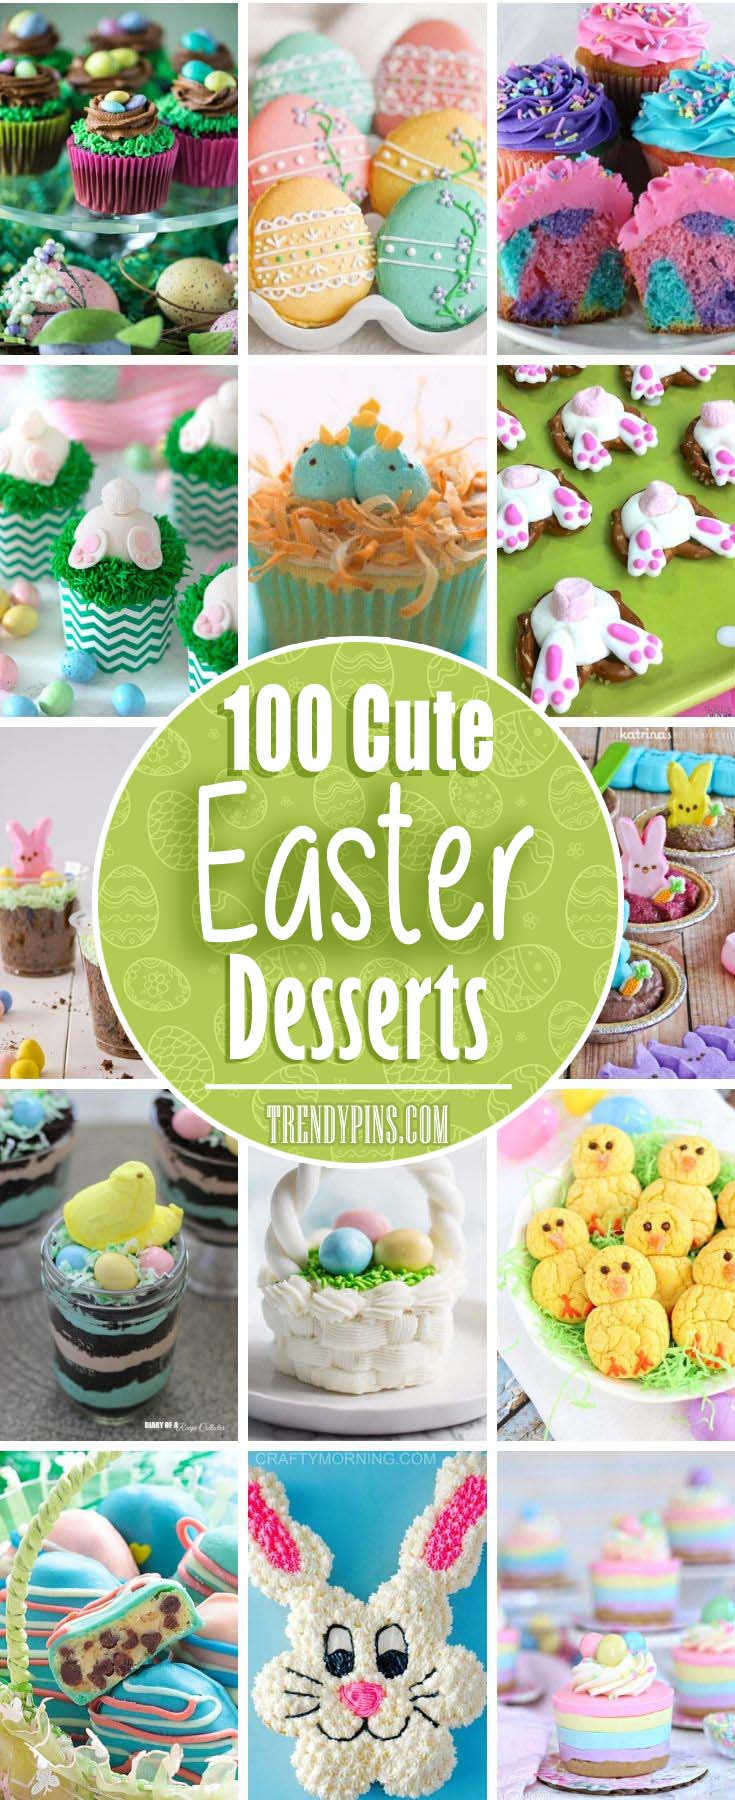 Desserts are the best part of any holiday. Try one of these great ideas for an Easter dessert #Easter #desserts #recipes #trendypins